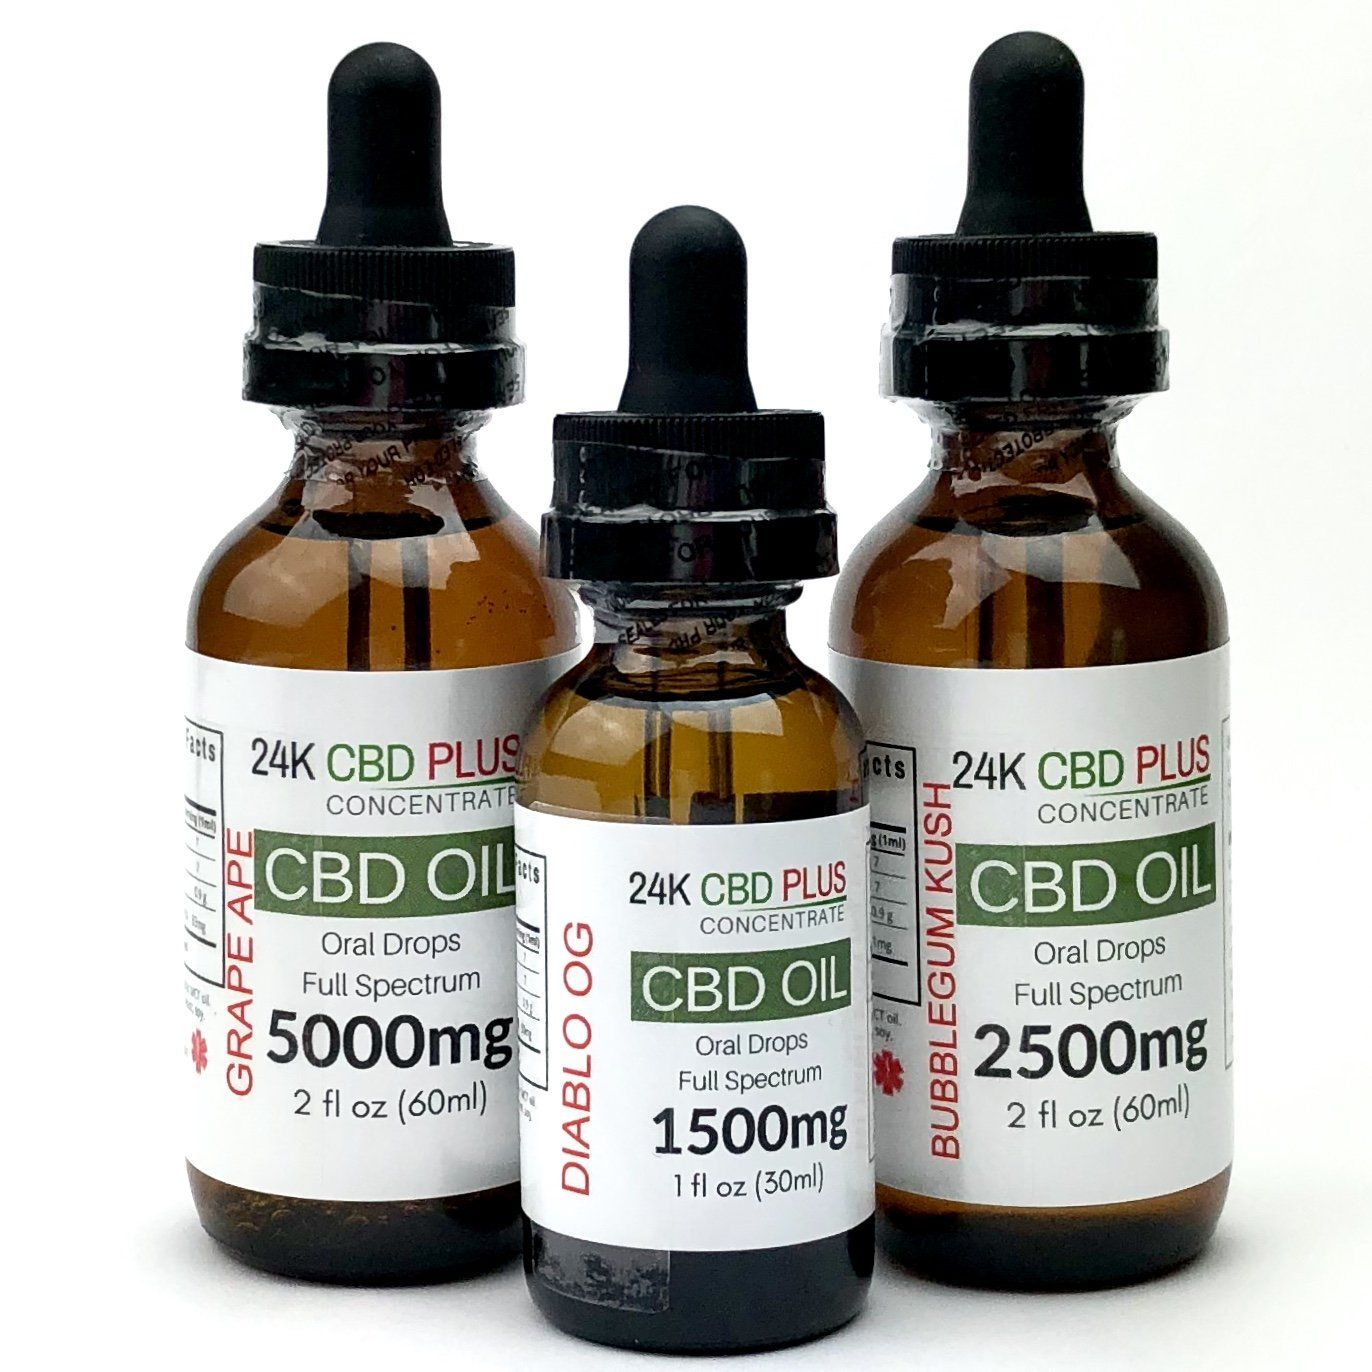 Full Spectrum CBD Oil Tincture With Canna Terpenes  DIABLO OG, STRAWBERRY COUGH, GELATO, GRAPE APE, BUBBLEGUM KUSH